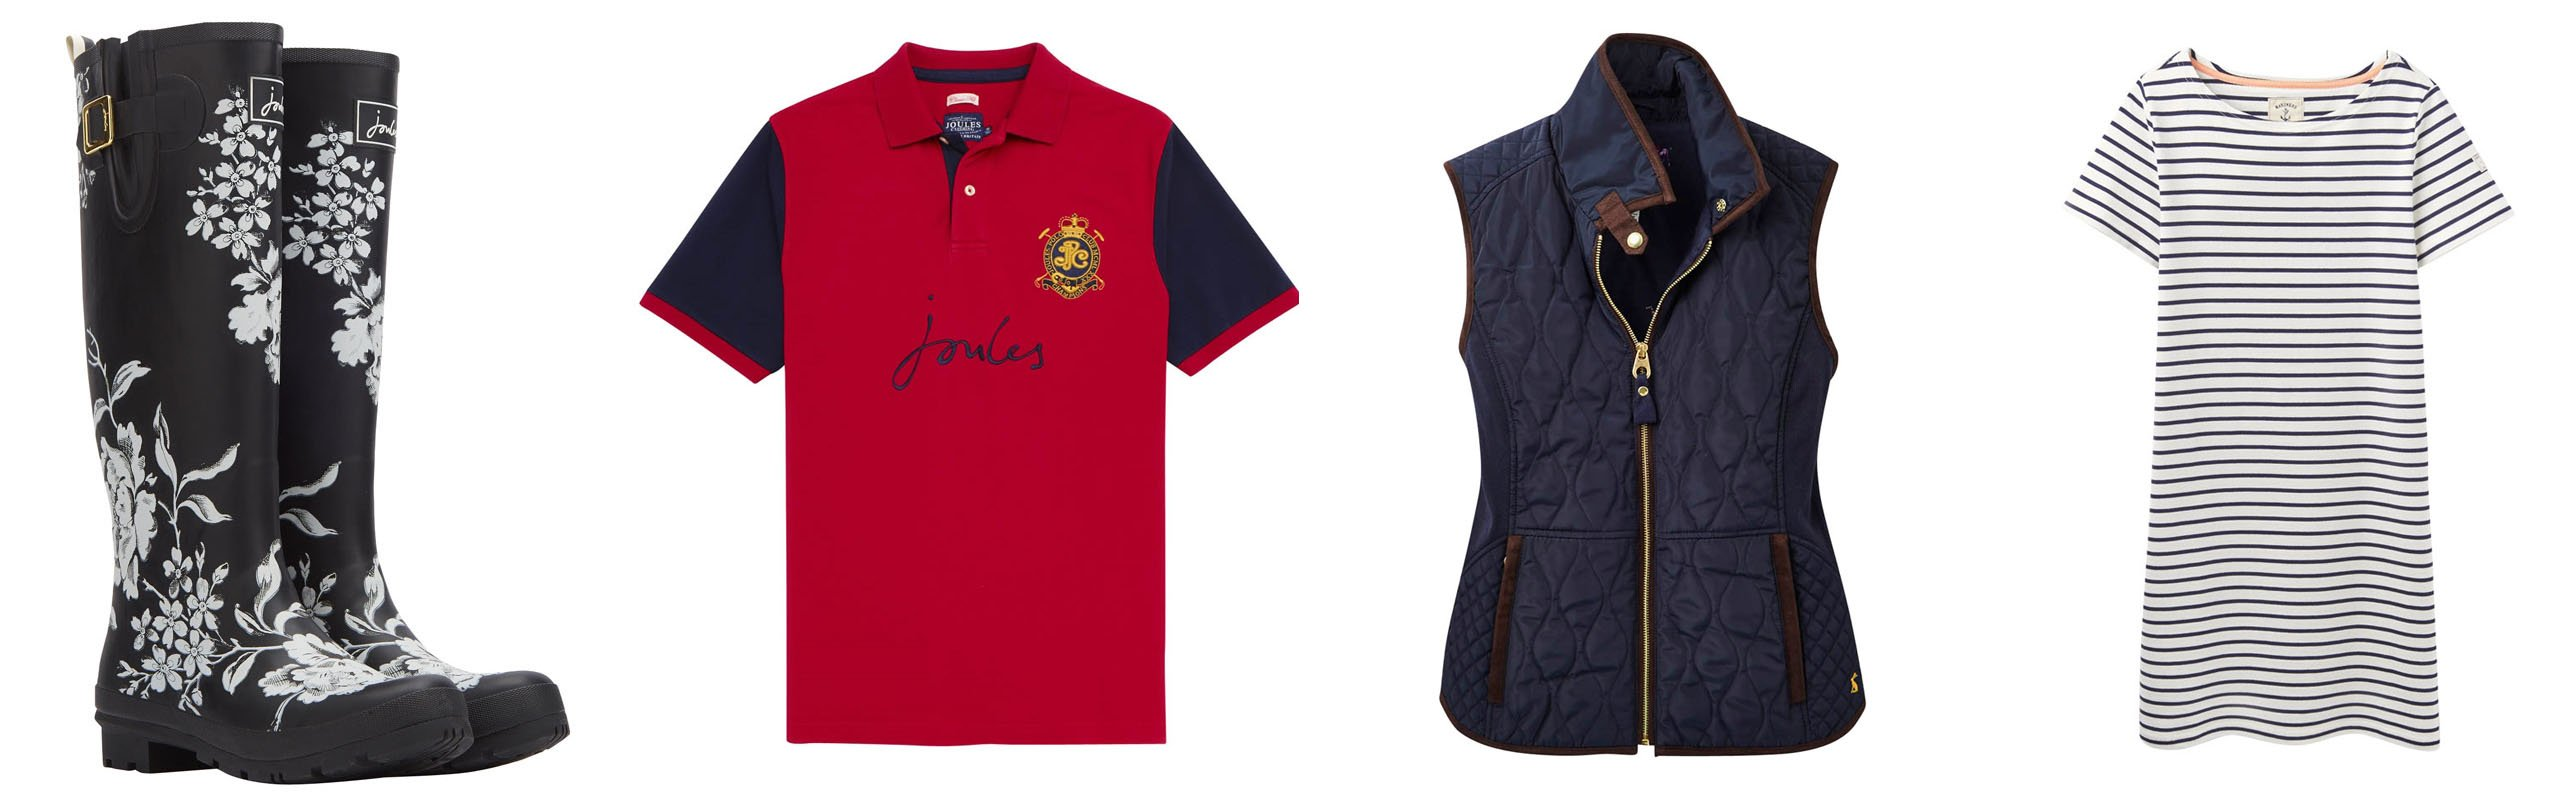 joules womens clothing, joules mens clothing, mens polo shirts, womens gilets, womens joules wellies, printed wellies